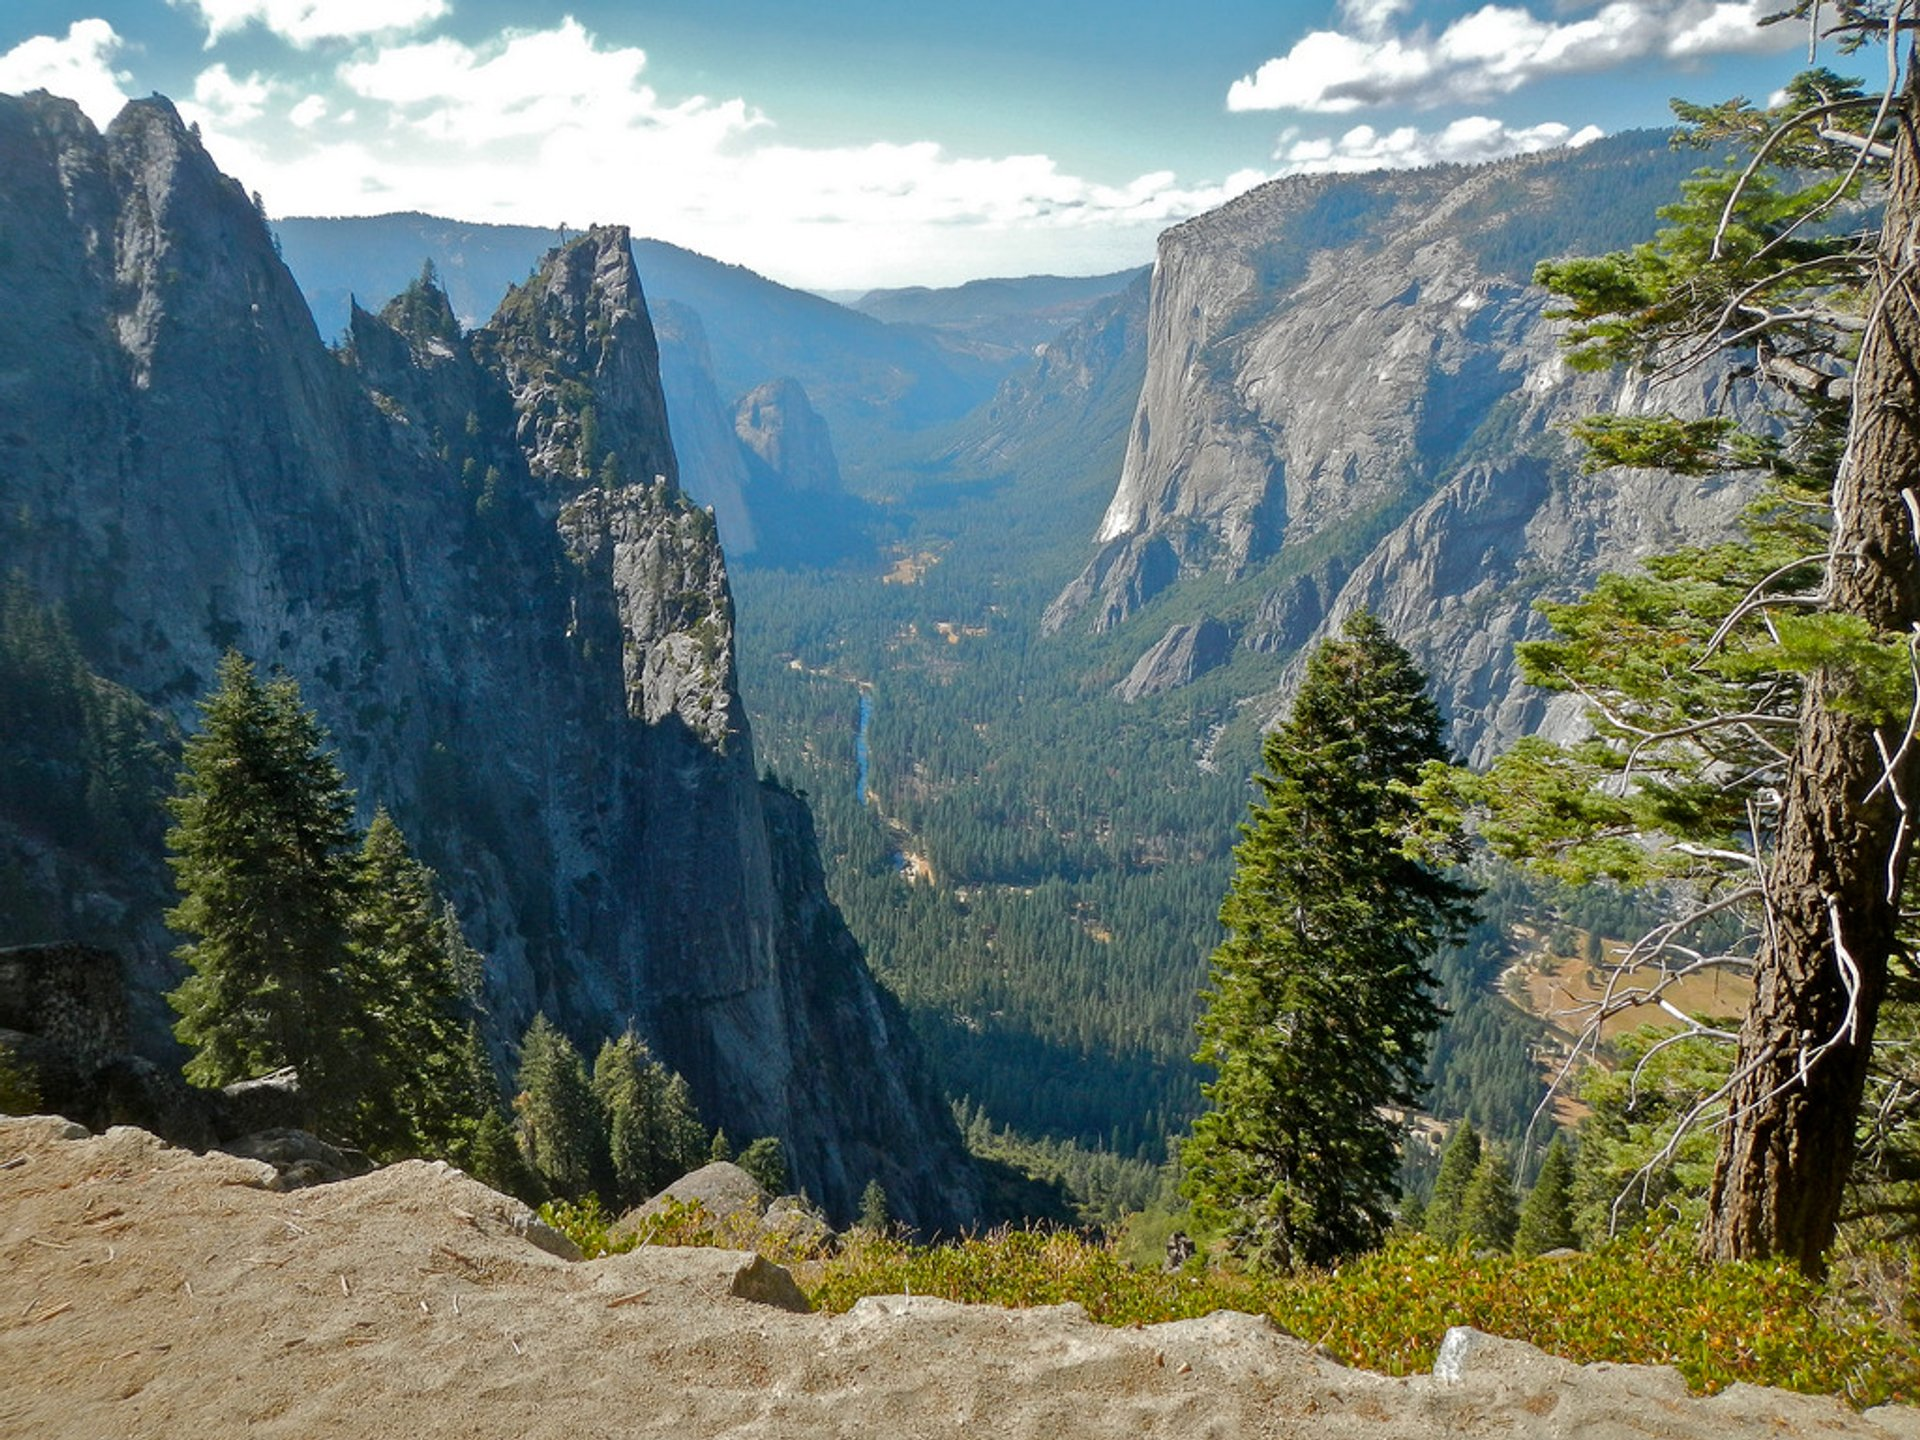 Yosemite National Park, hiking from Glacier Point into the valley. 2020